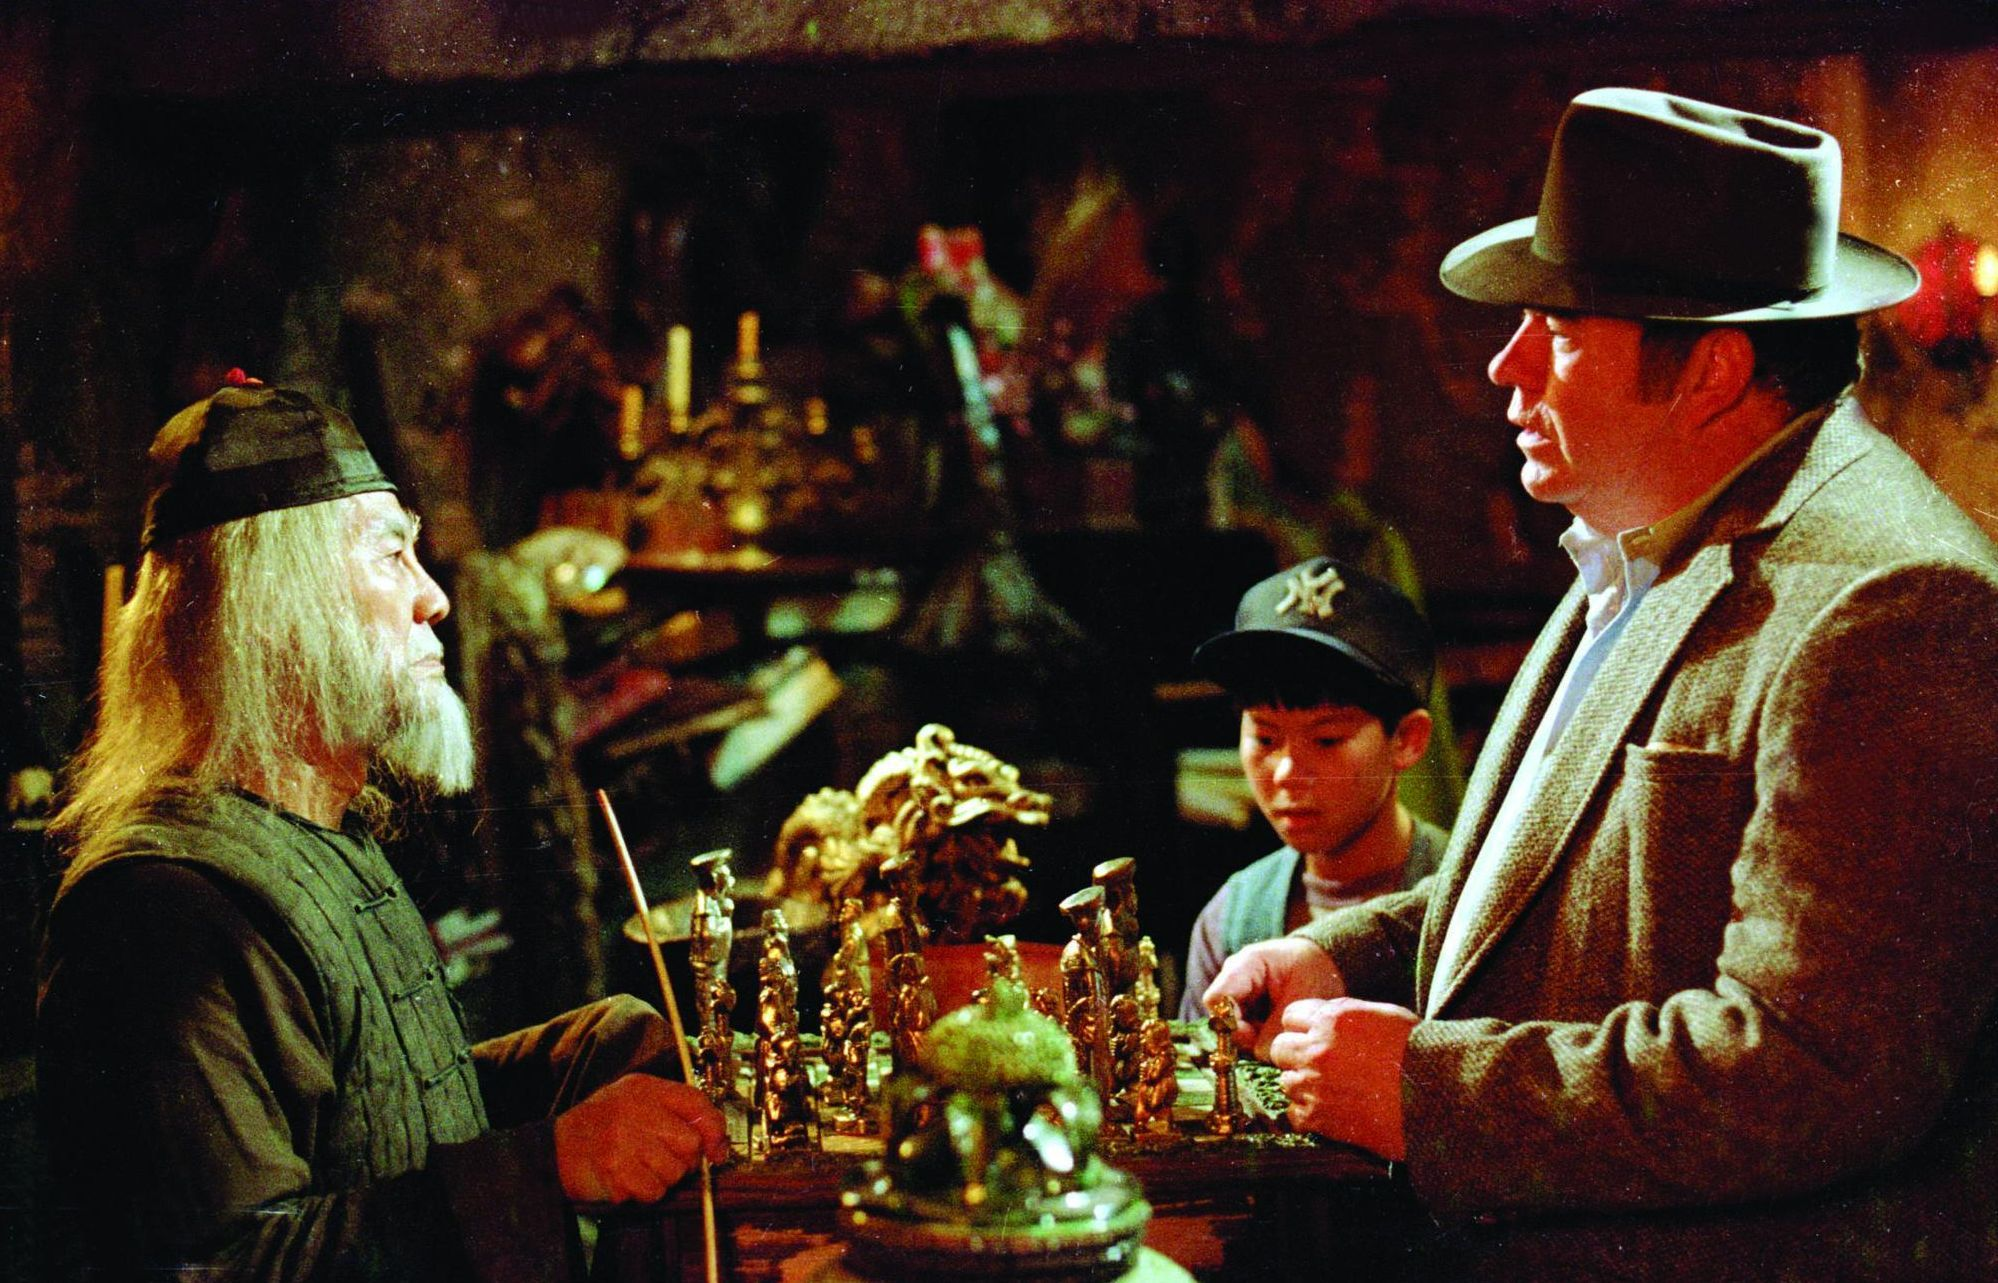 Hoyt Axton, John Louie, and Keye Luke in Gremlins (1984)